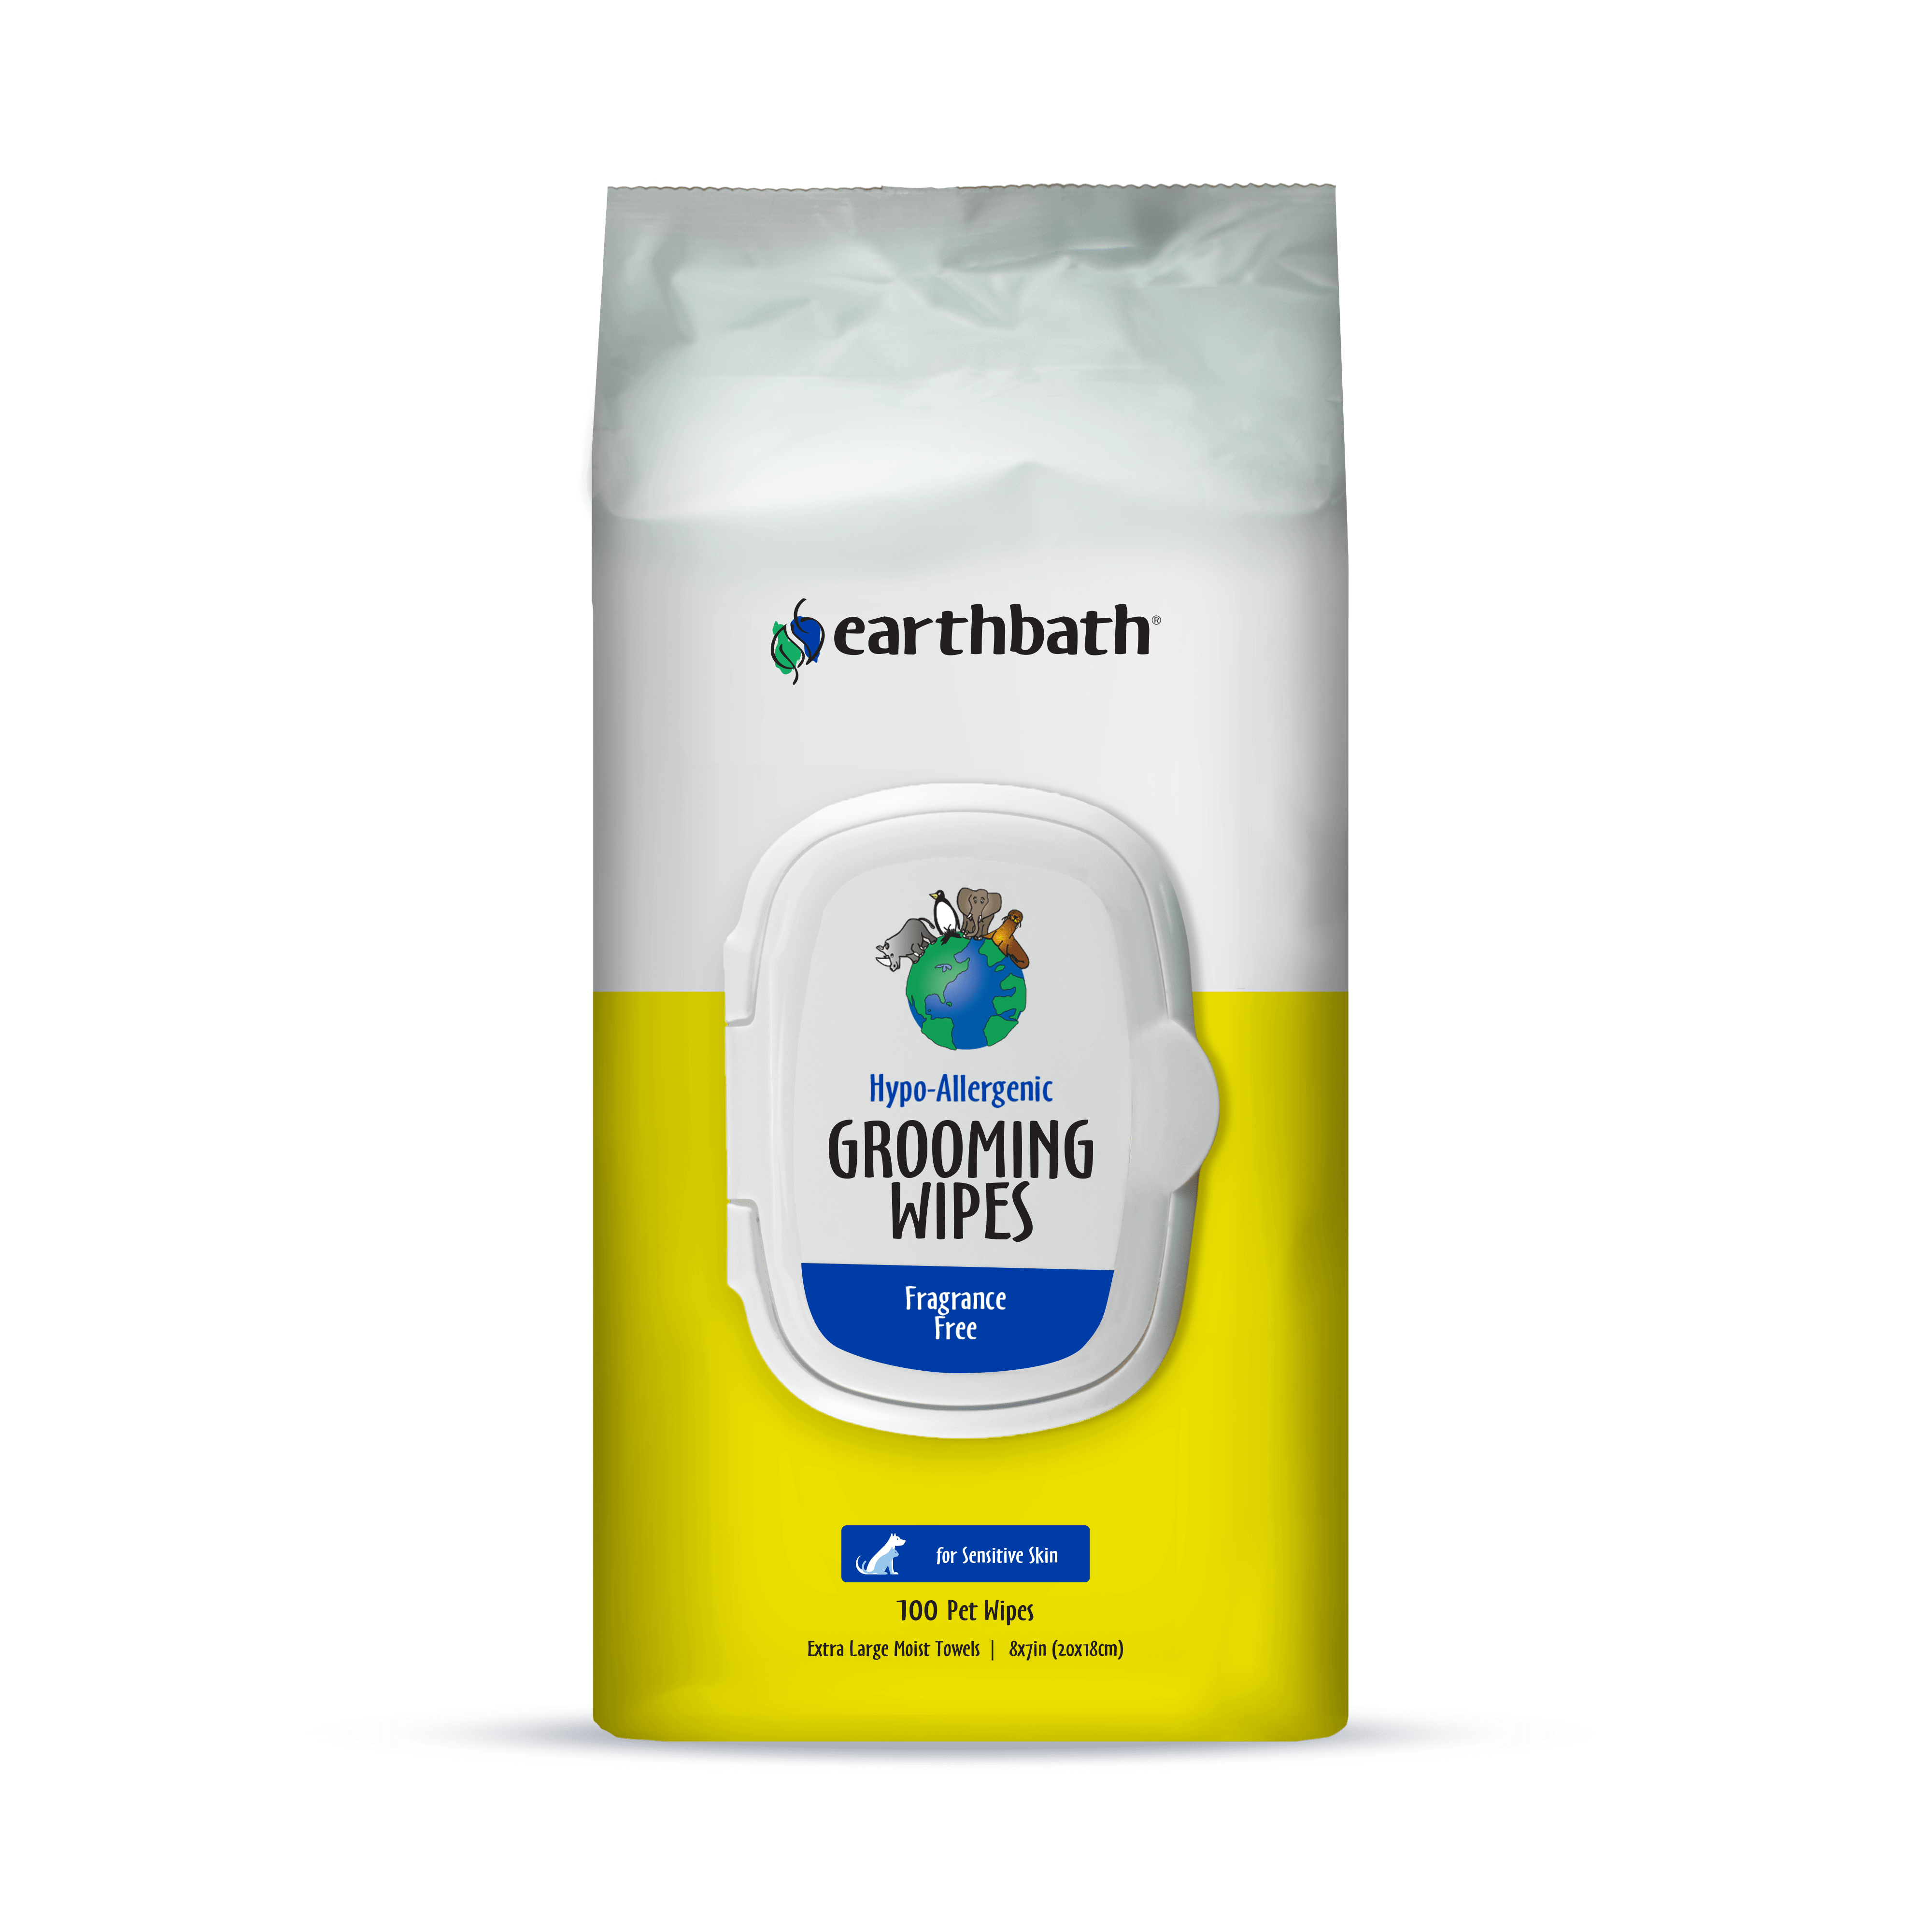 Earthbath Hypo-Allergenic and Fragrance Free Grooming Wipes Image